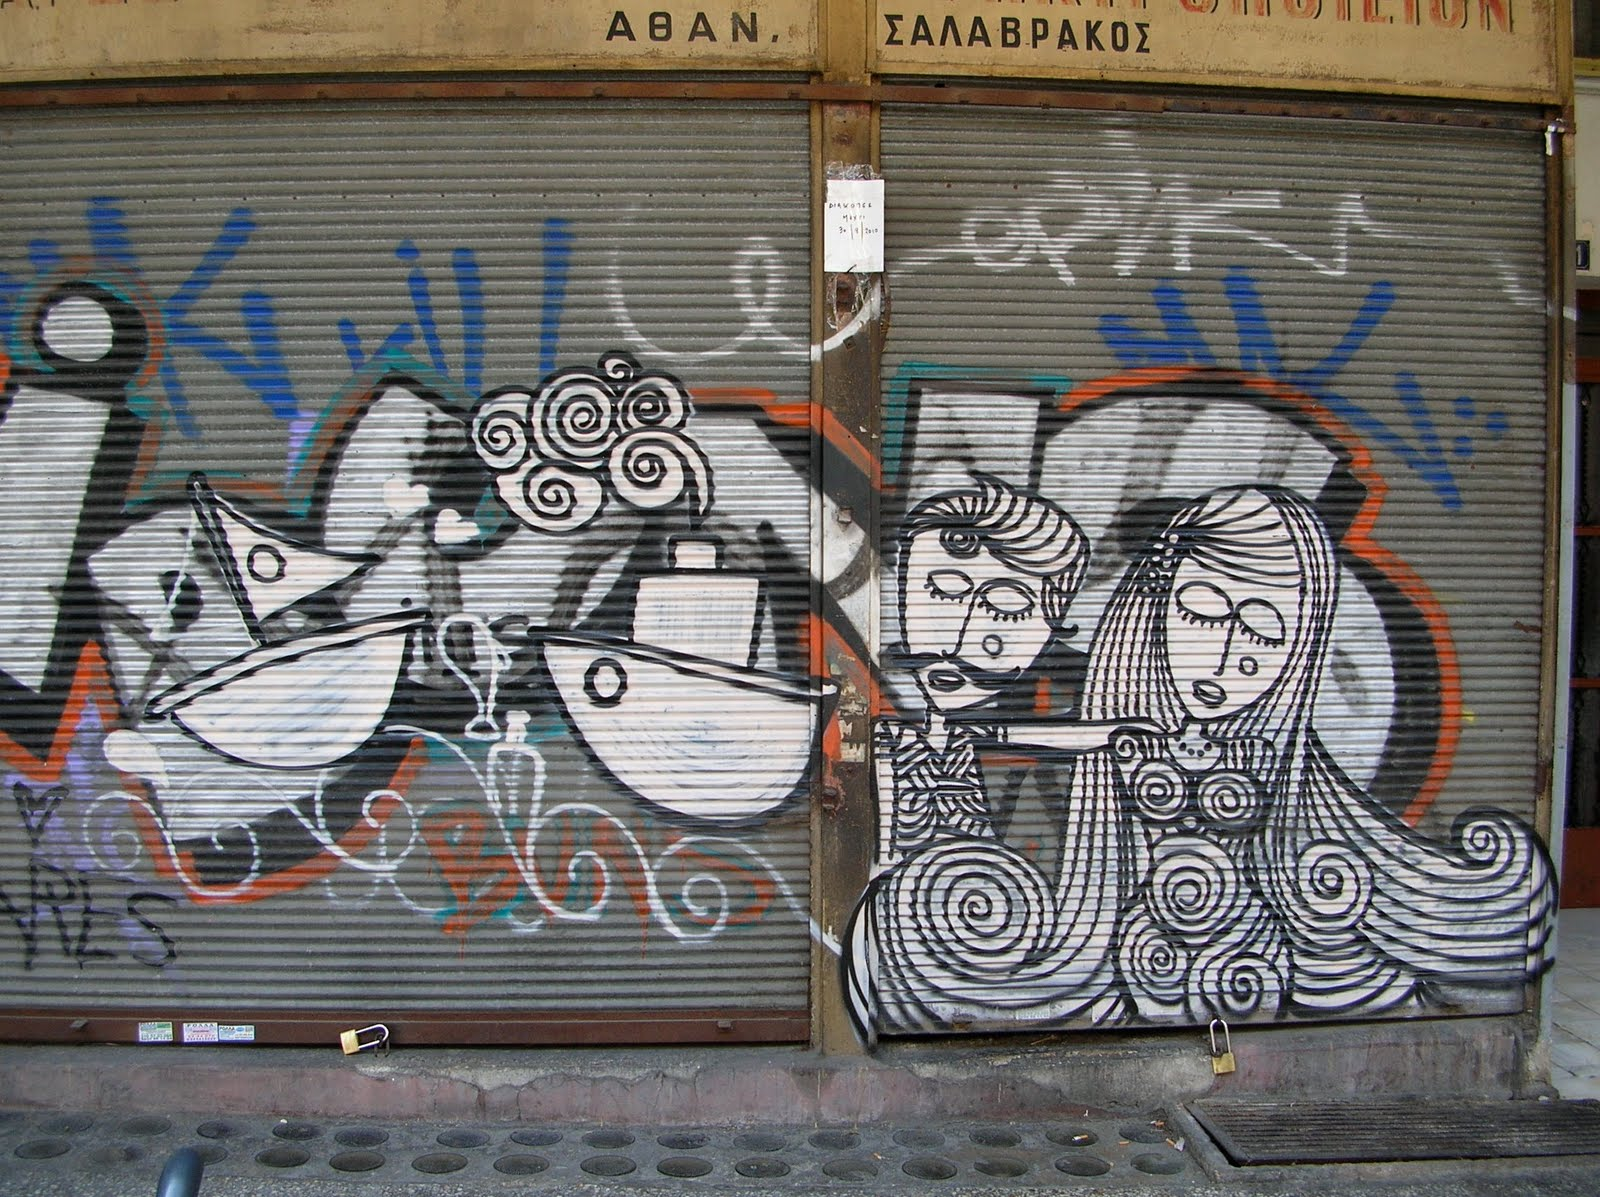 Gmail graffiti theme